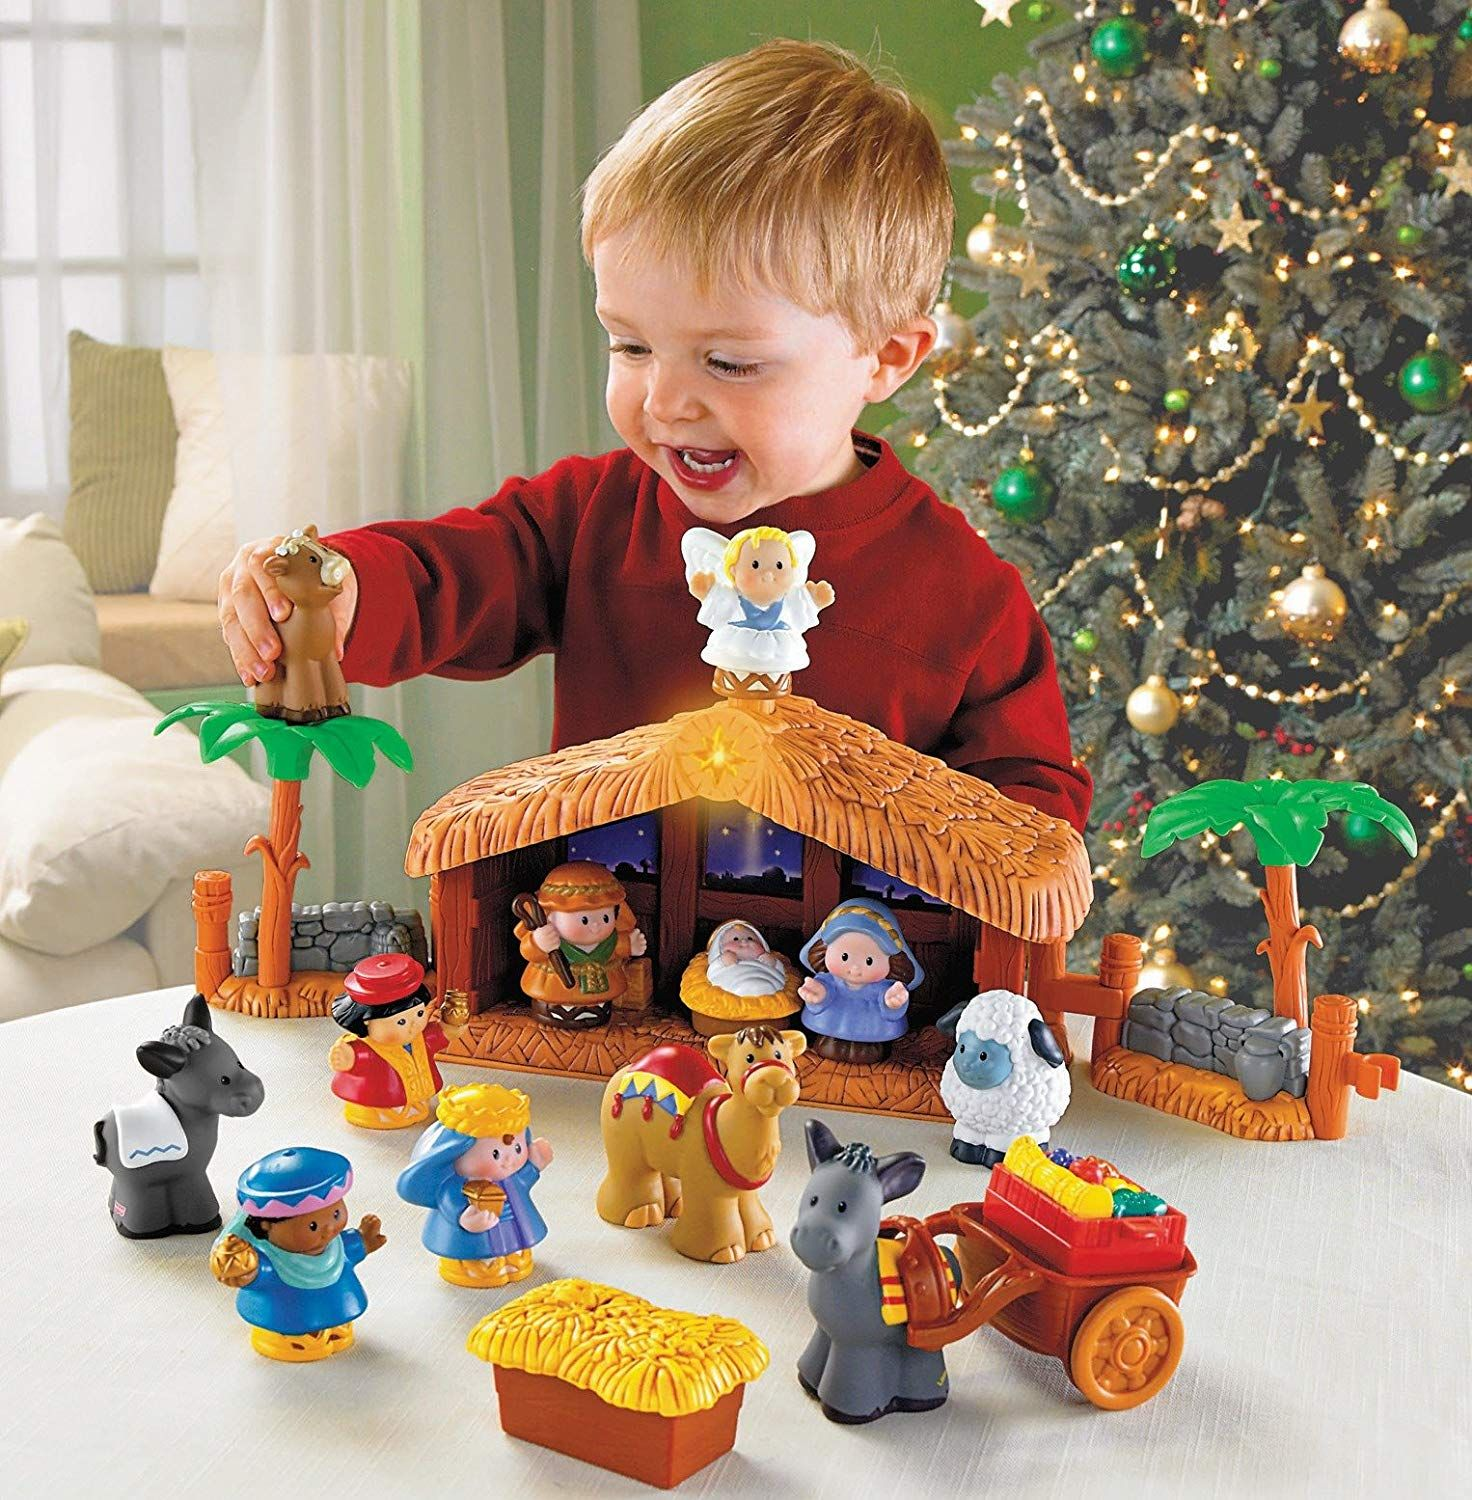 Old People Christmas Gifts: Best Gifts And Toys For 2 Year Old Boys